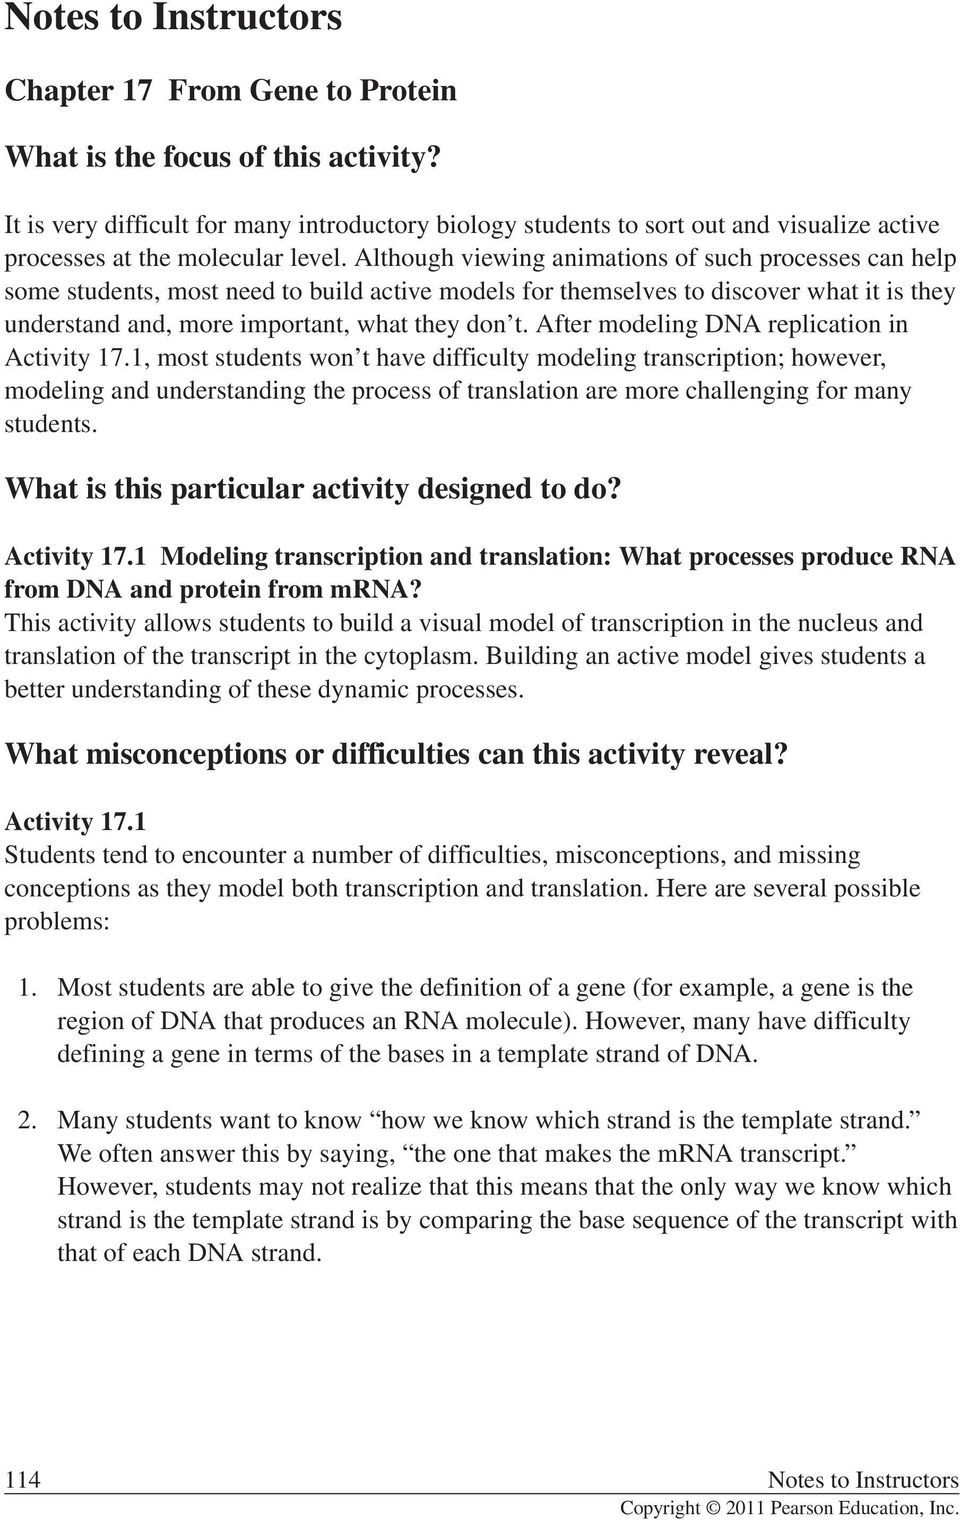 What are the particular activities designed to do? - PDF